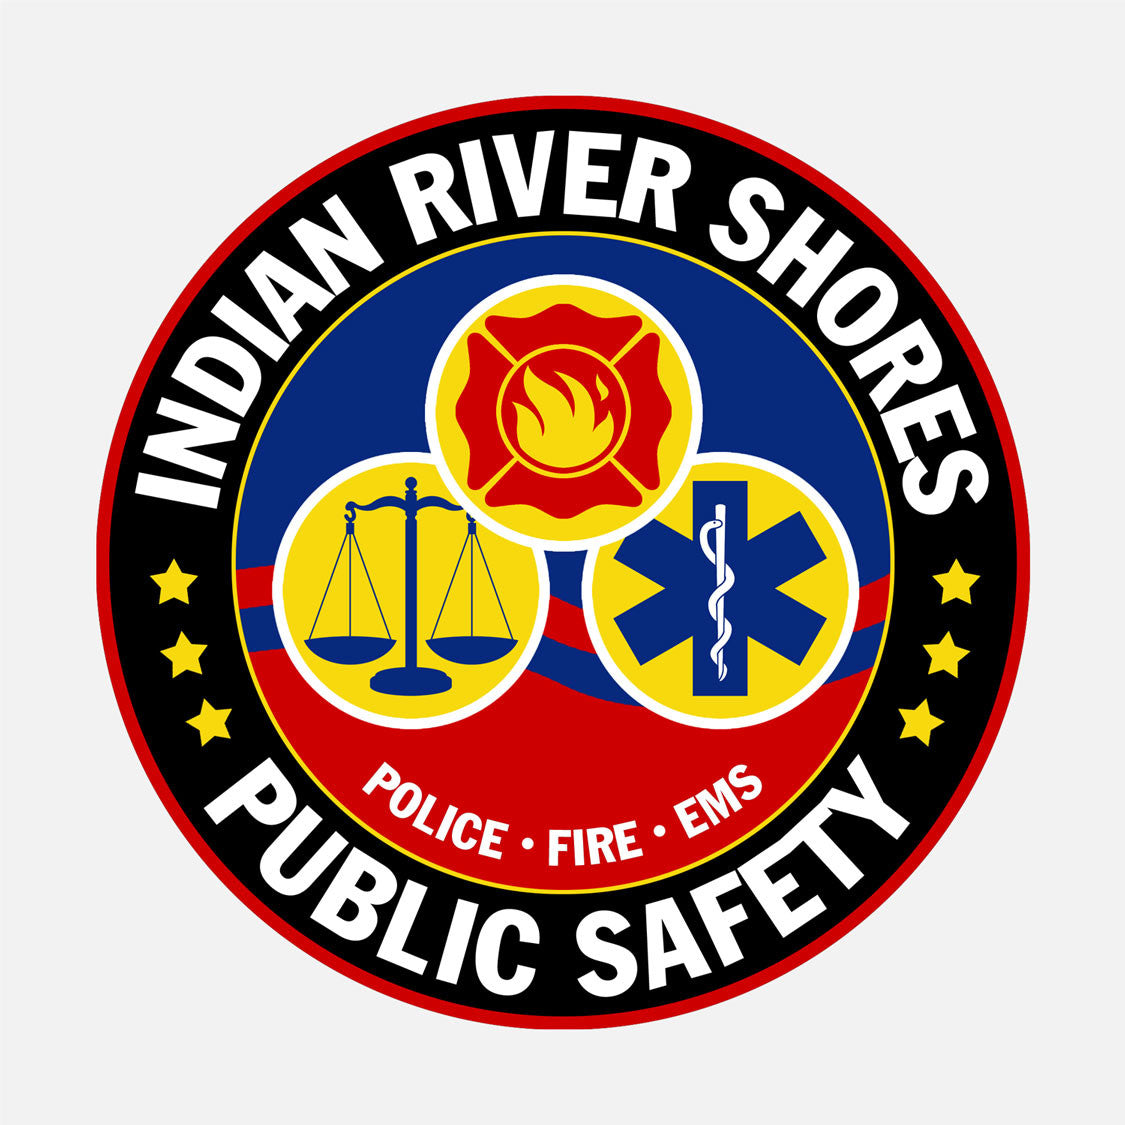 Indian River Shores Public Safety